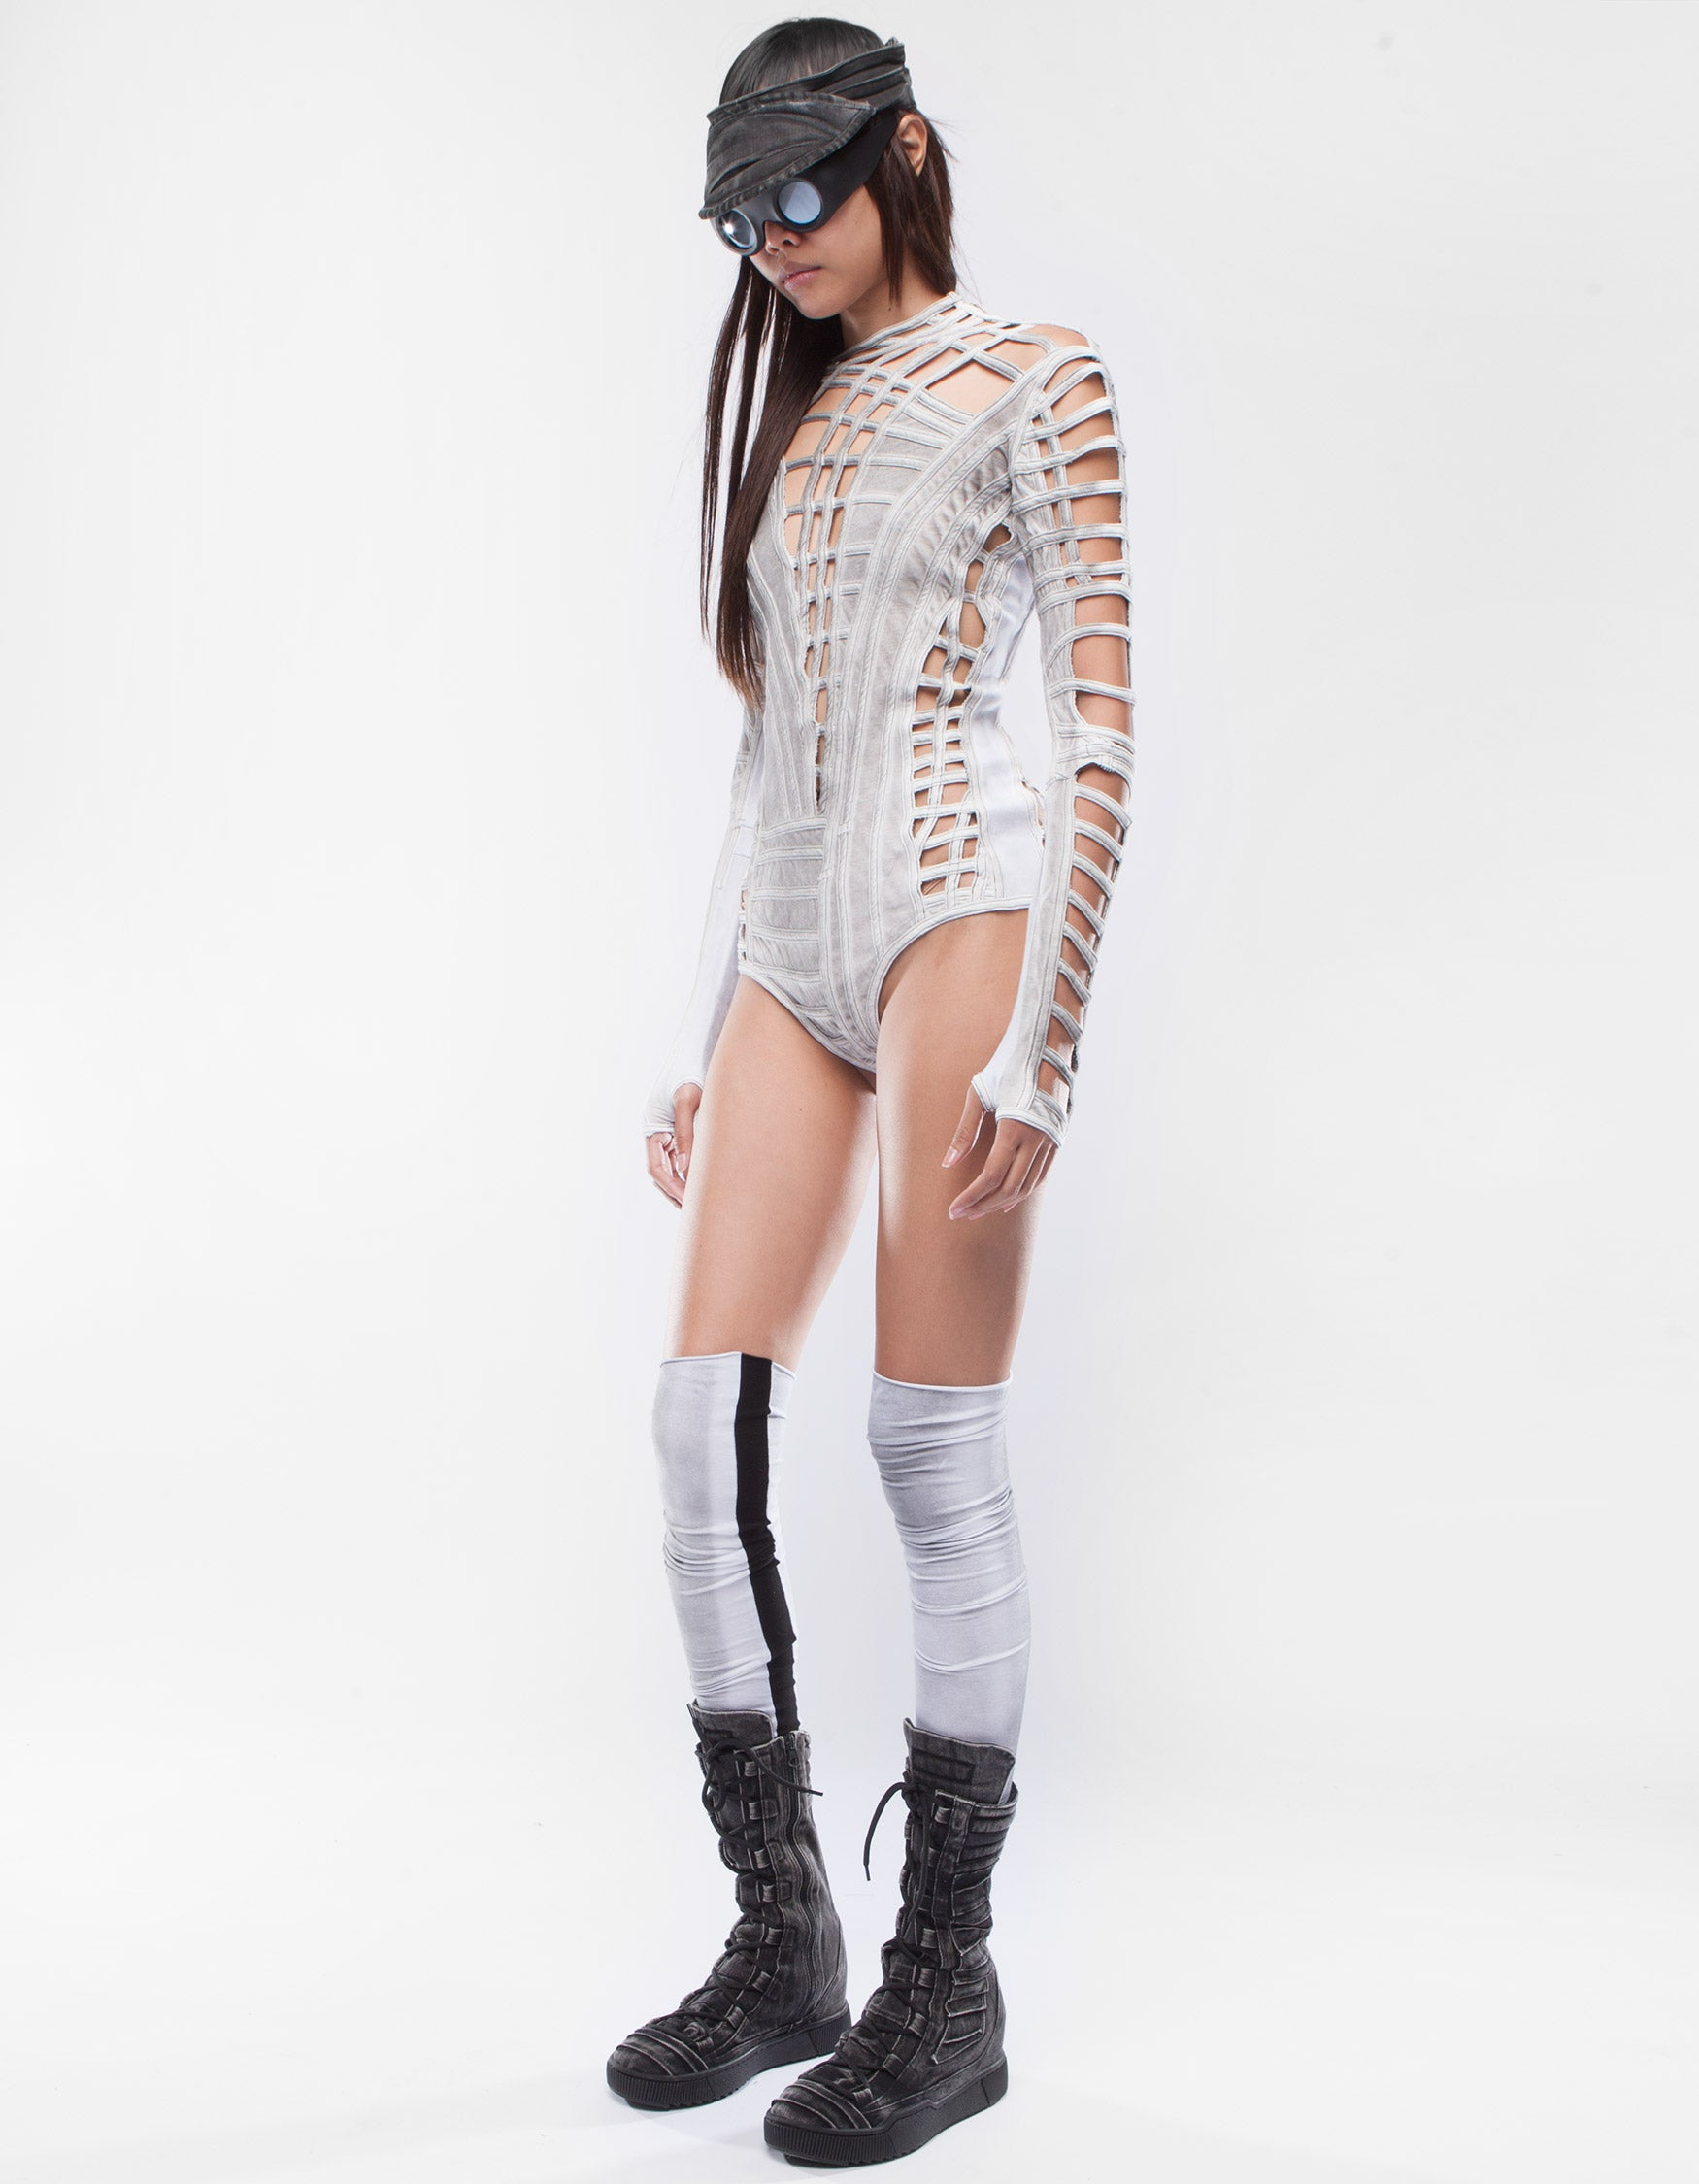 BODY SUIT LIGHTWORKER